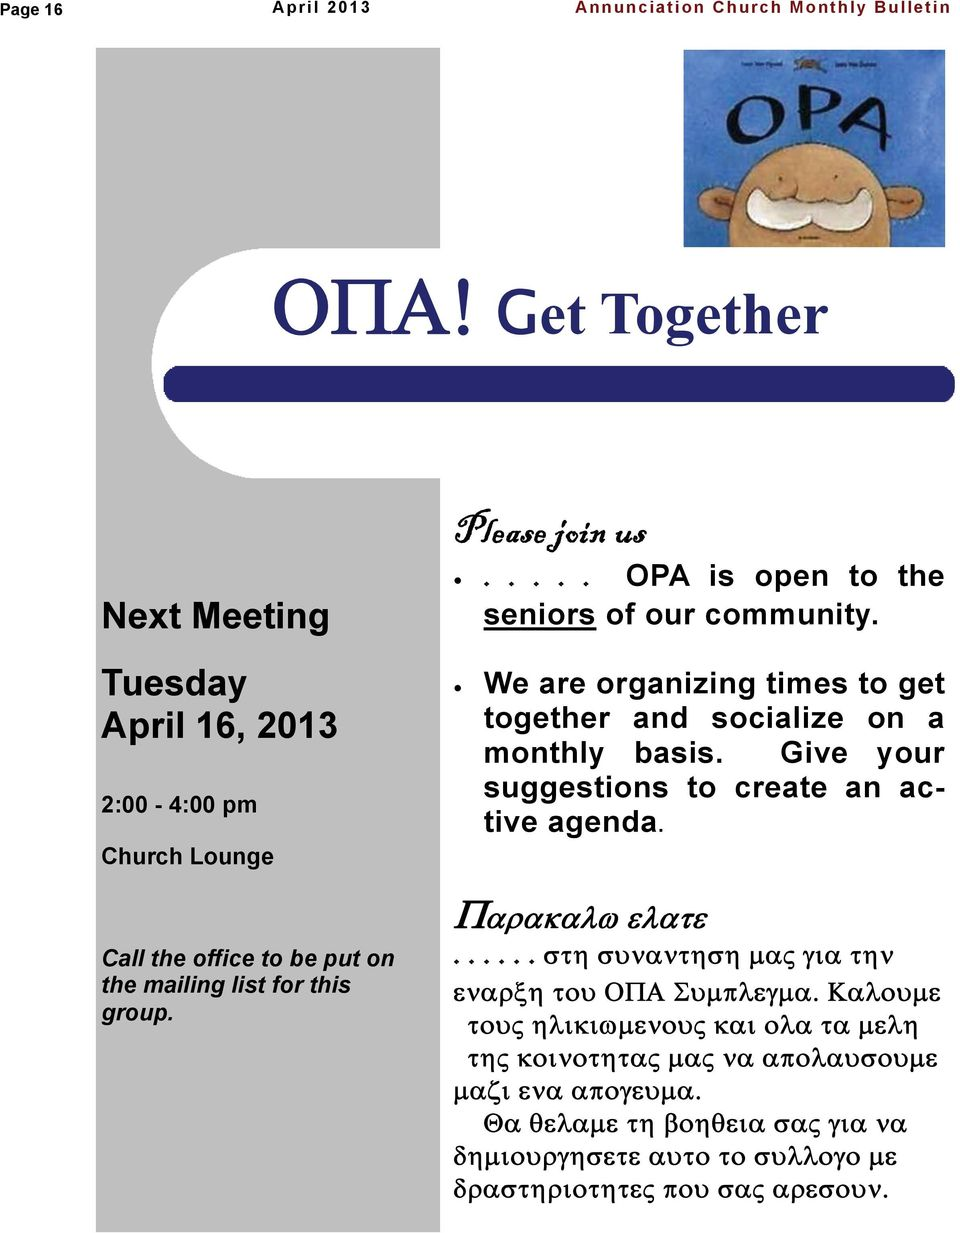 Please join us..... OPA is open to the seniors of our community.